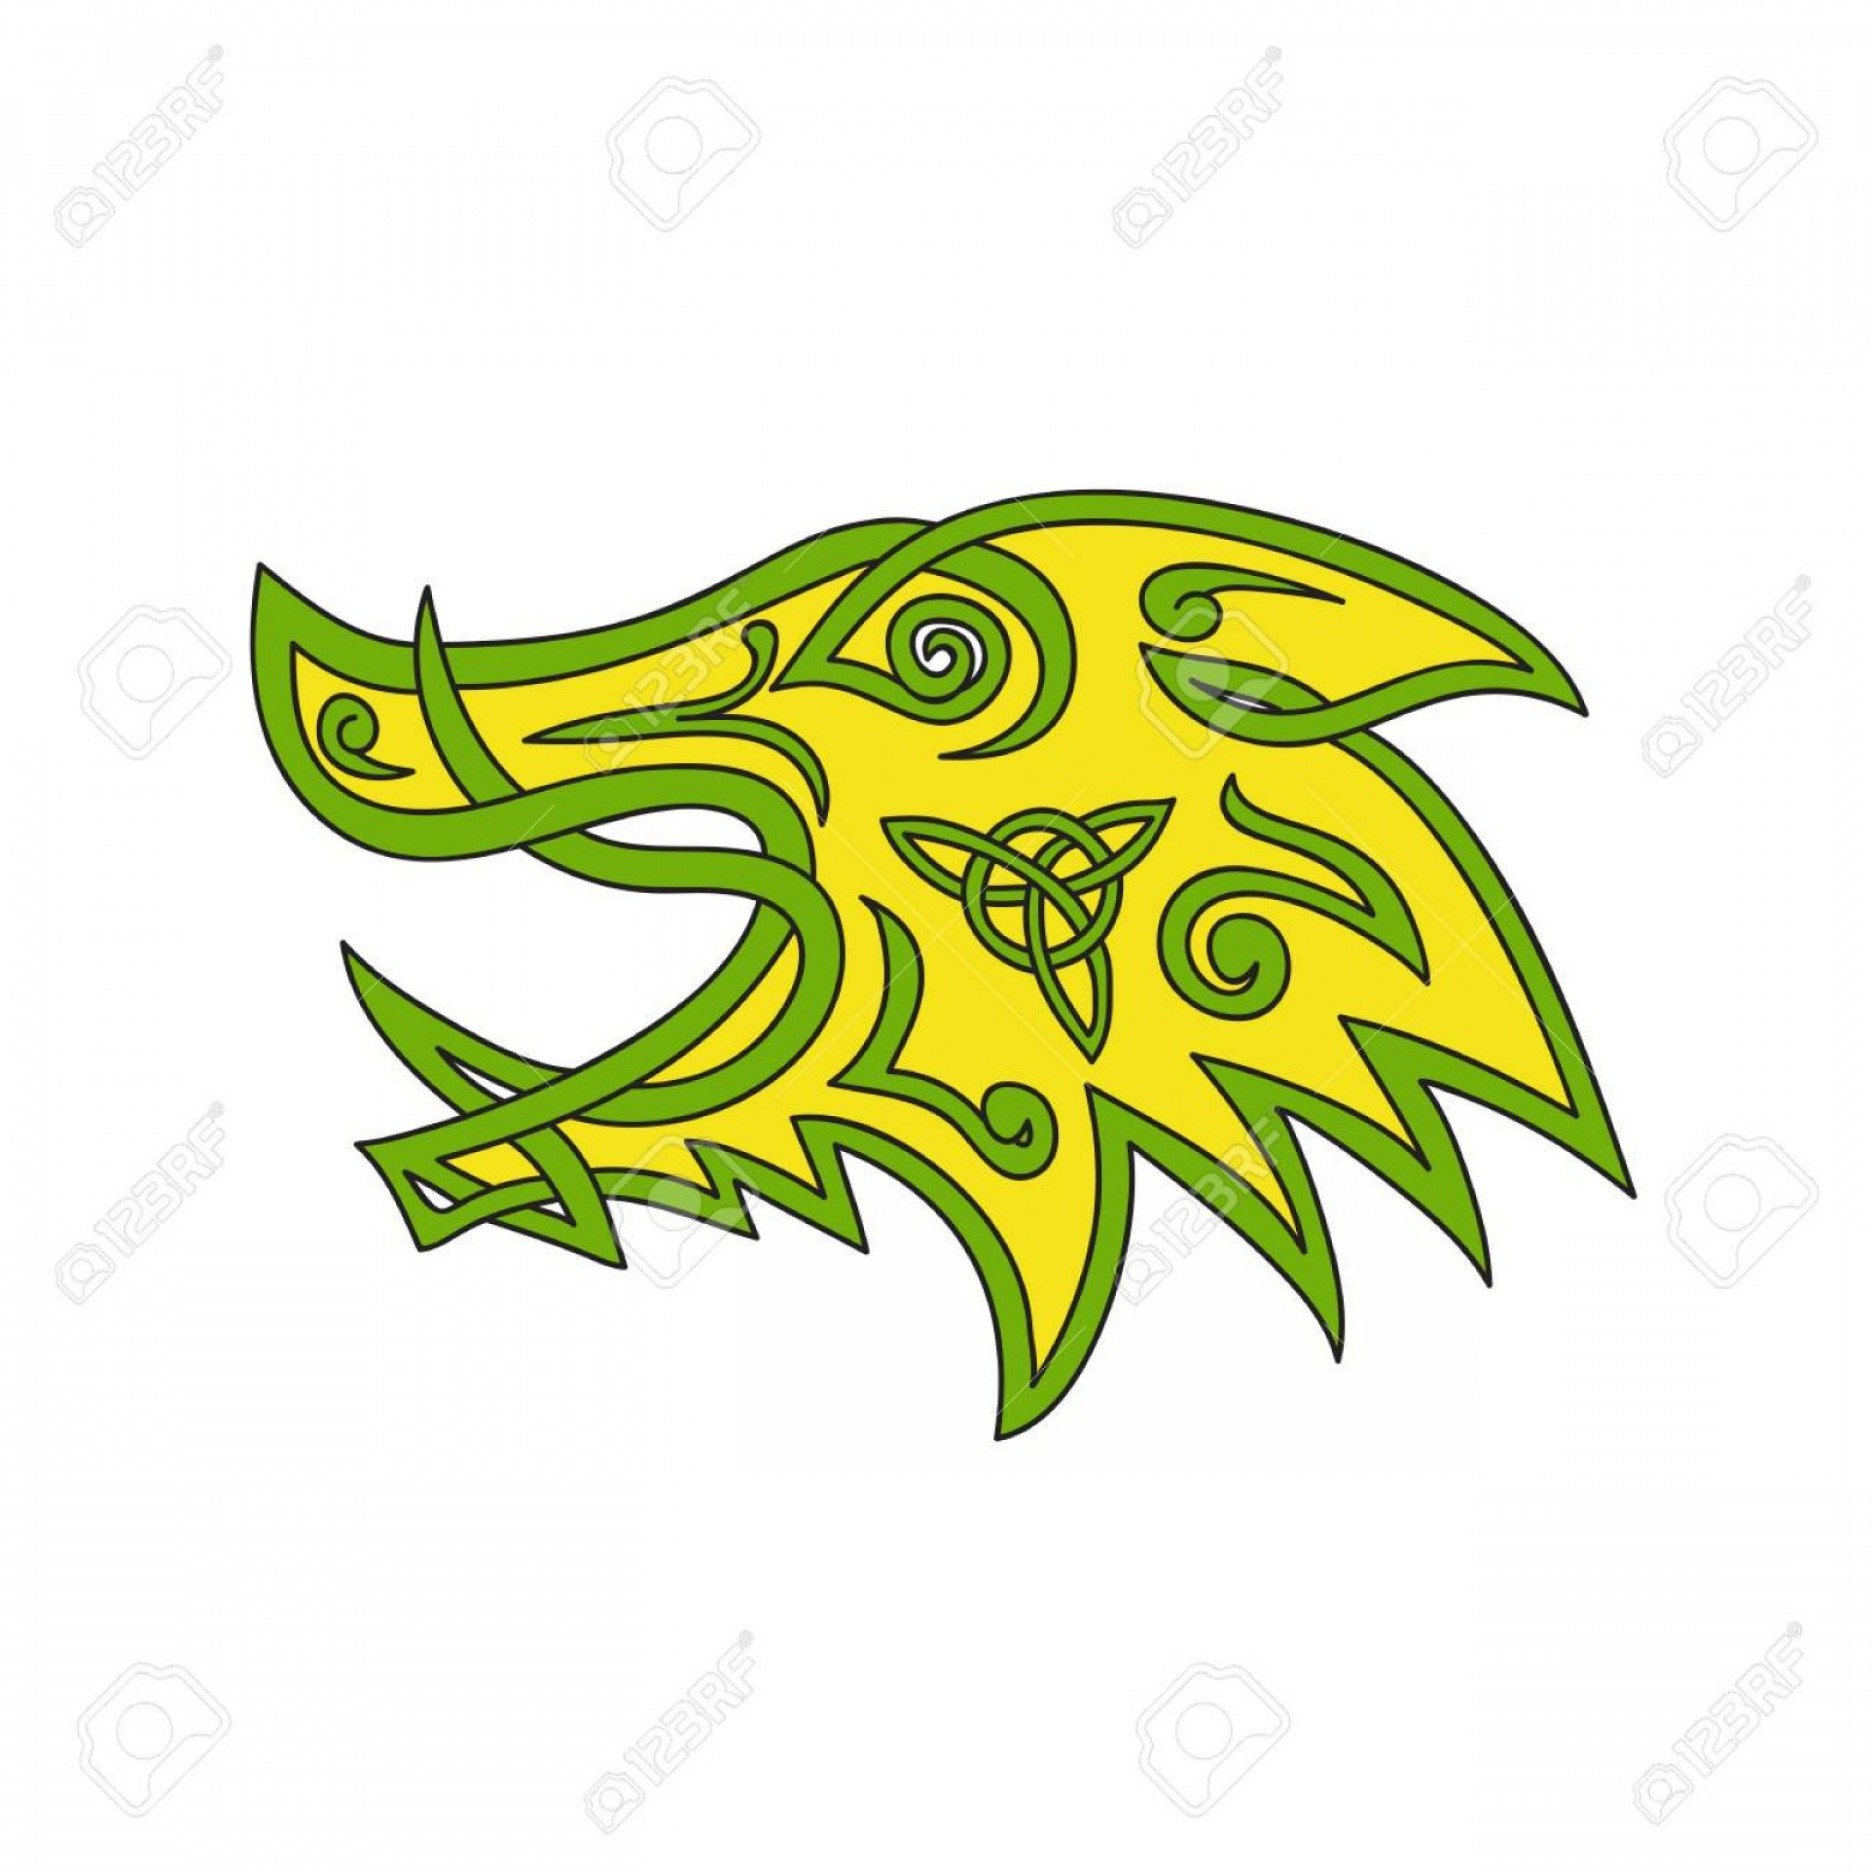 Razorback Vector Mandala: Photostock Vector Celtic Knot Stylized Illustration Of A Wild Boar Wild Pig Hog Or Razorback Head Viewed From Side Don